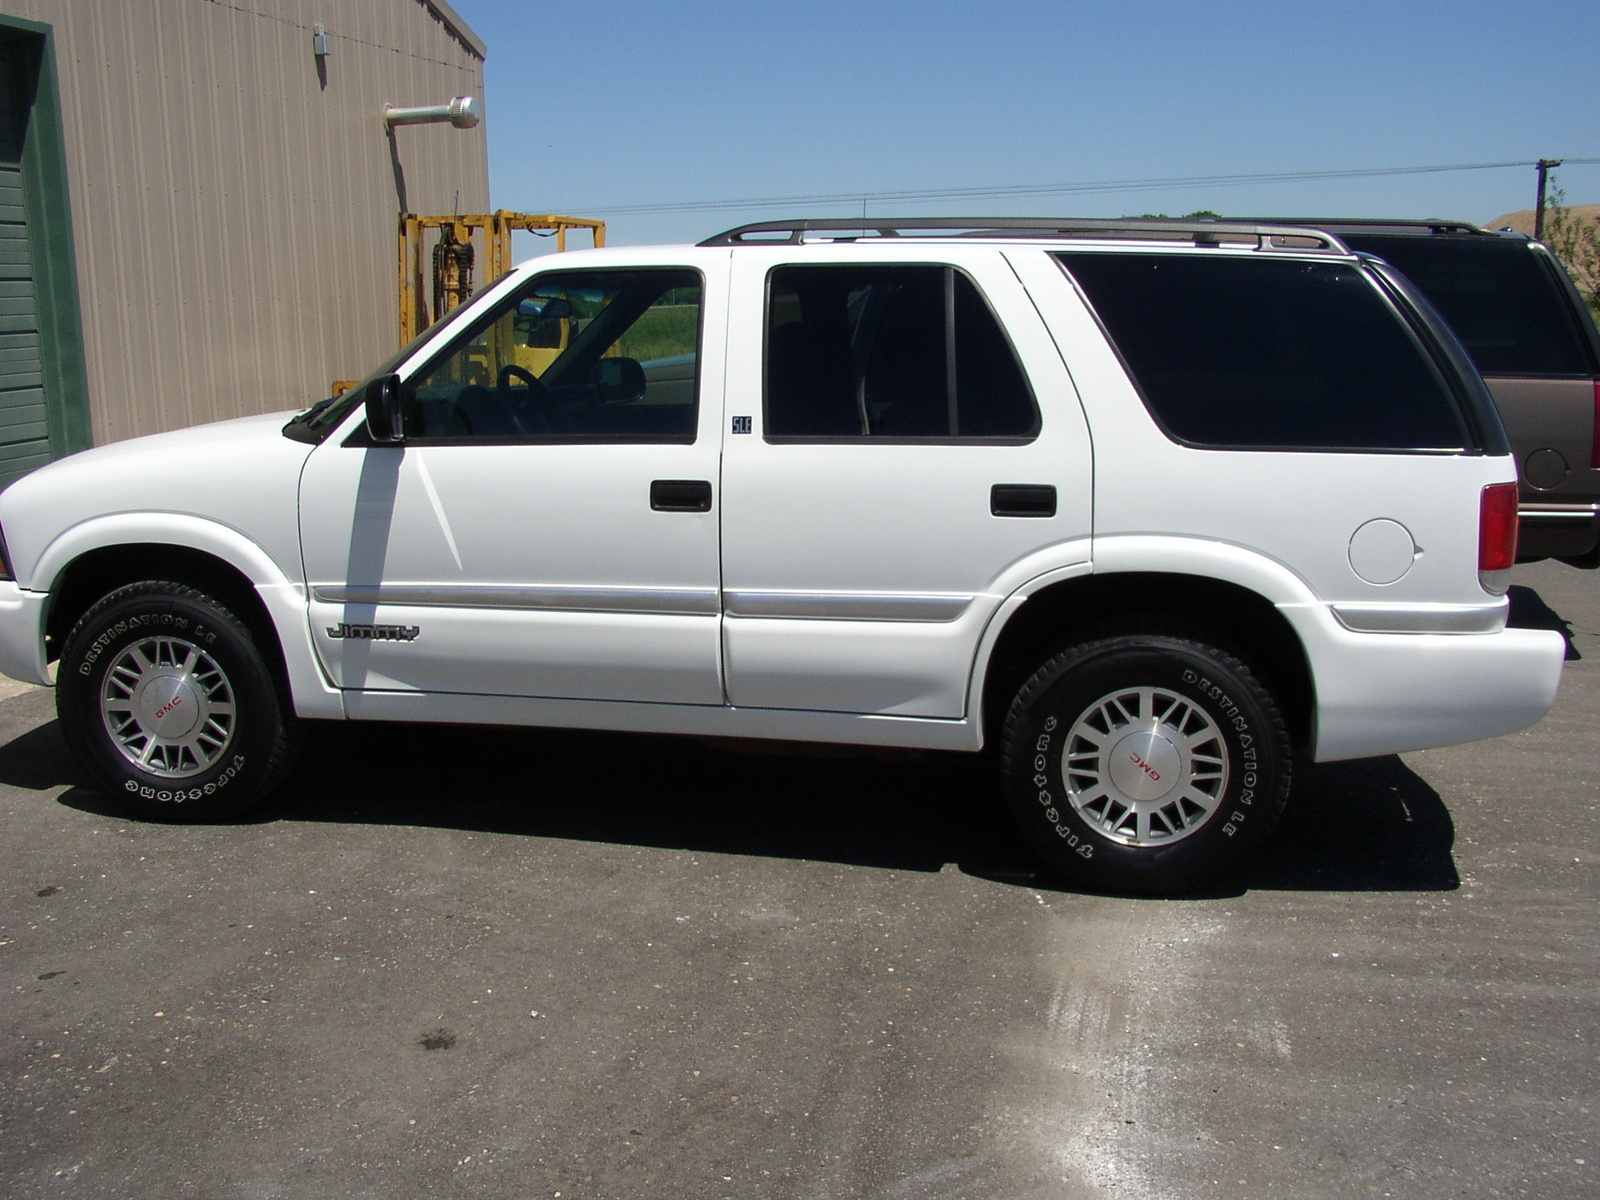 Picture of 2001 gmc jimmy 4 dr slt 4wd suv